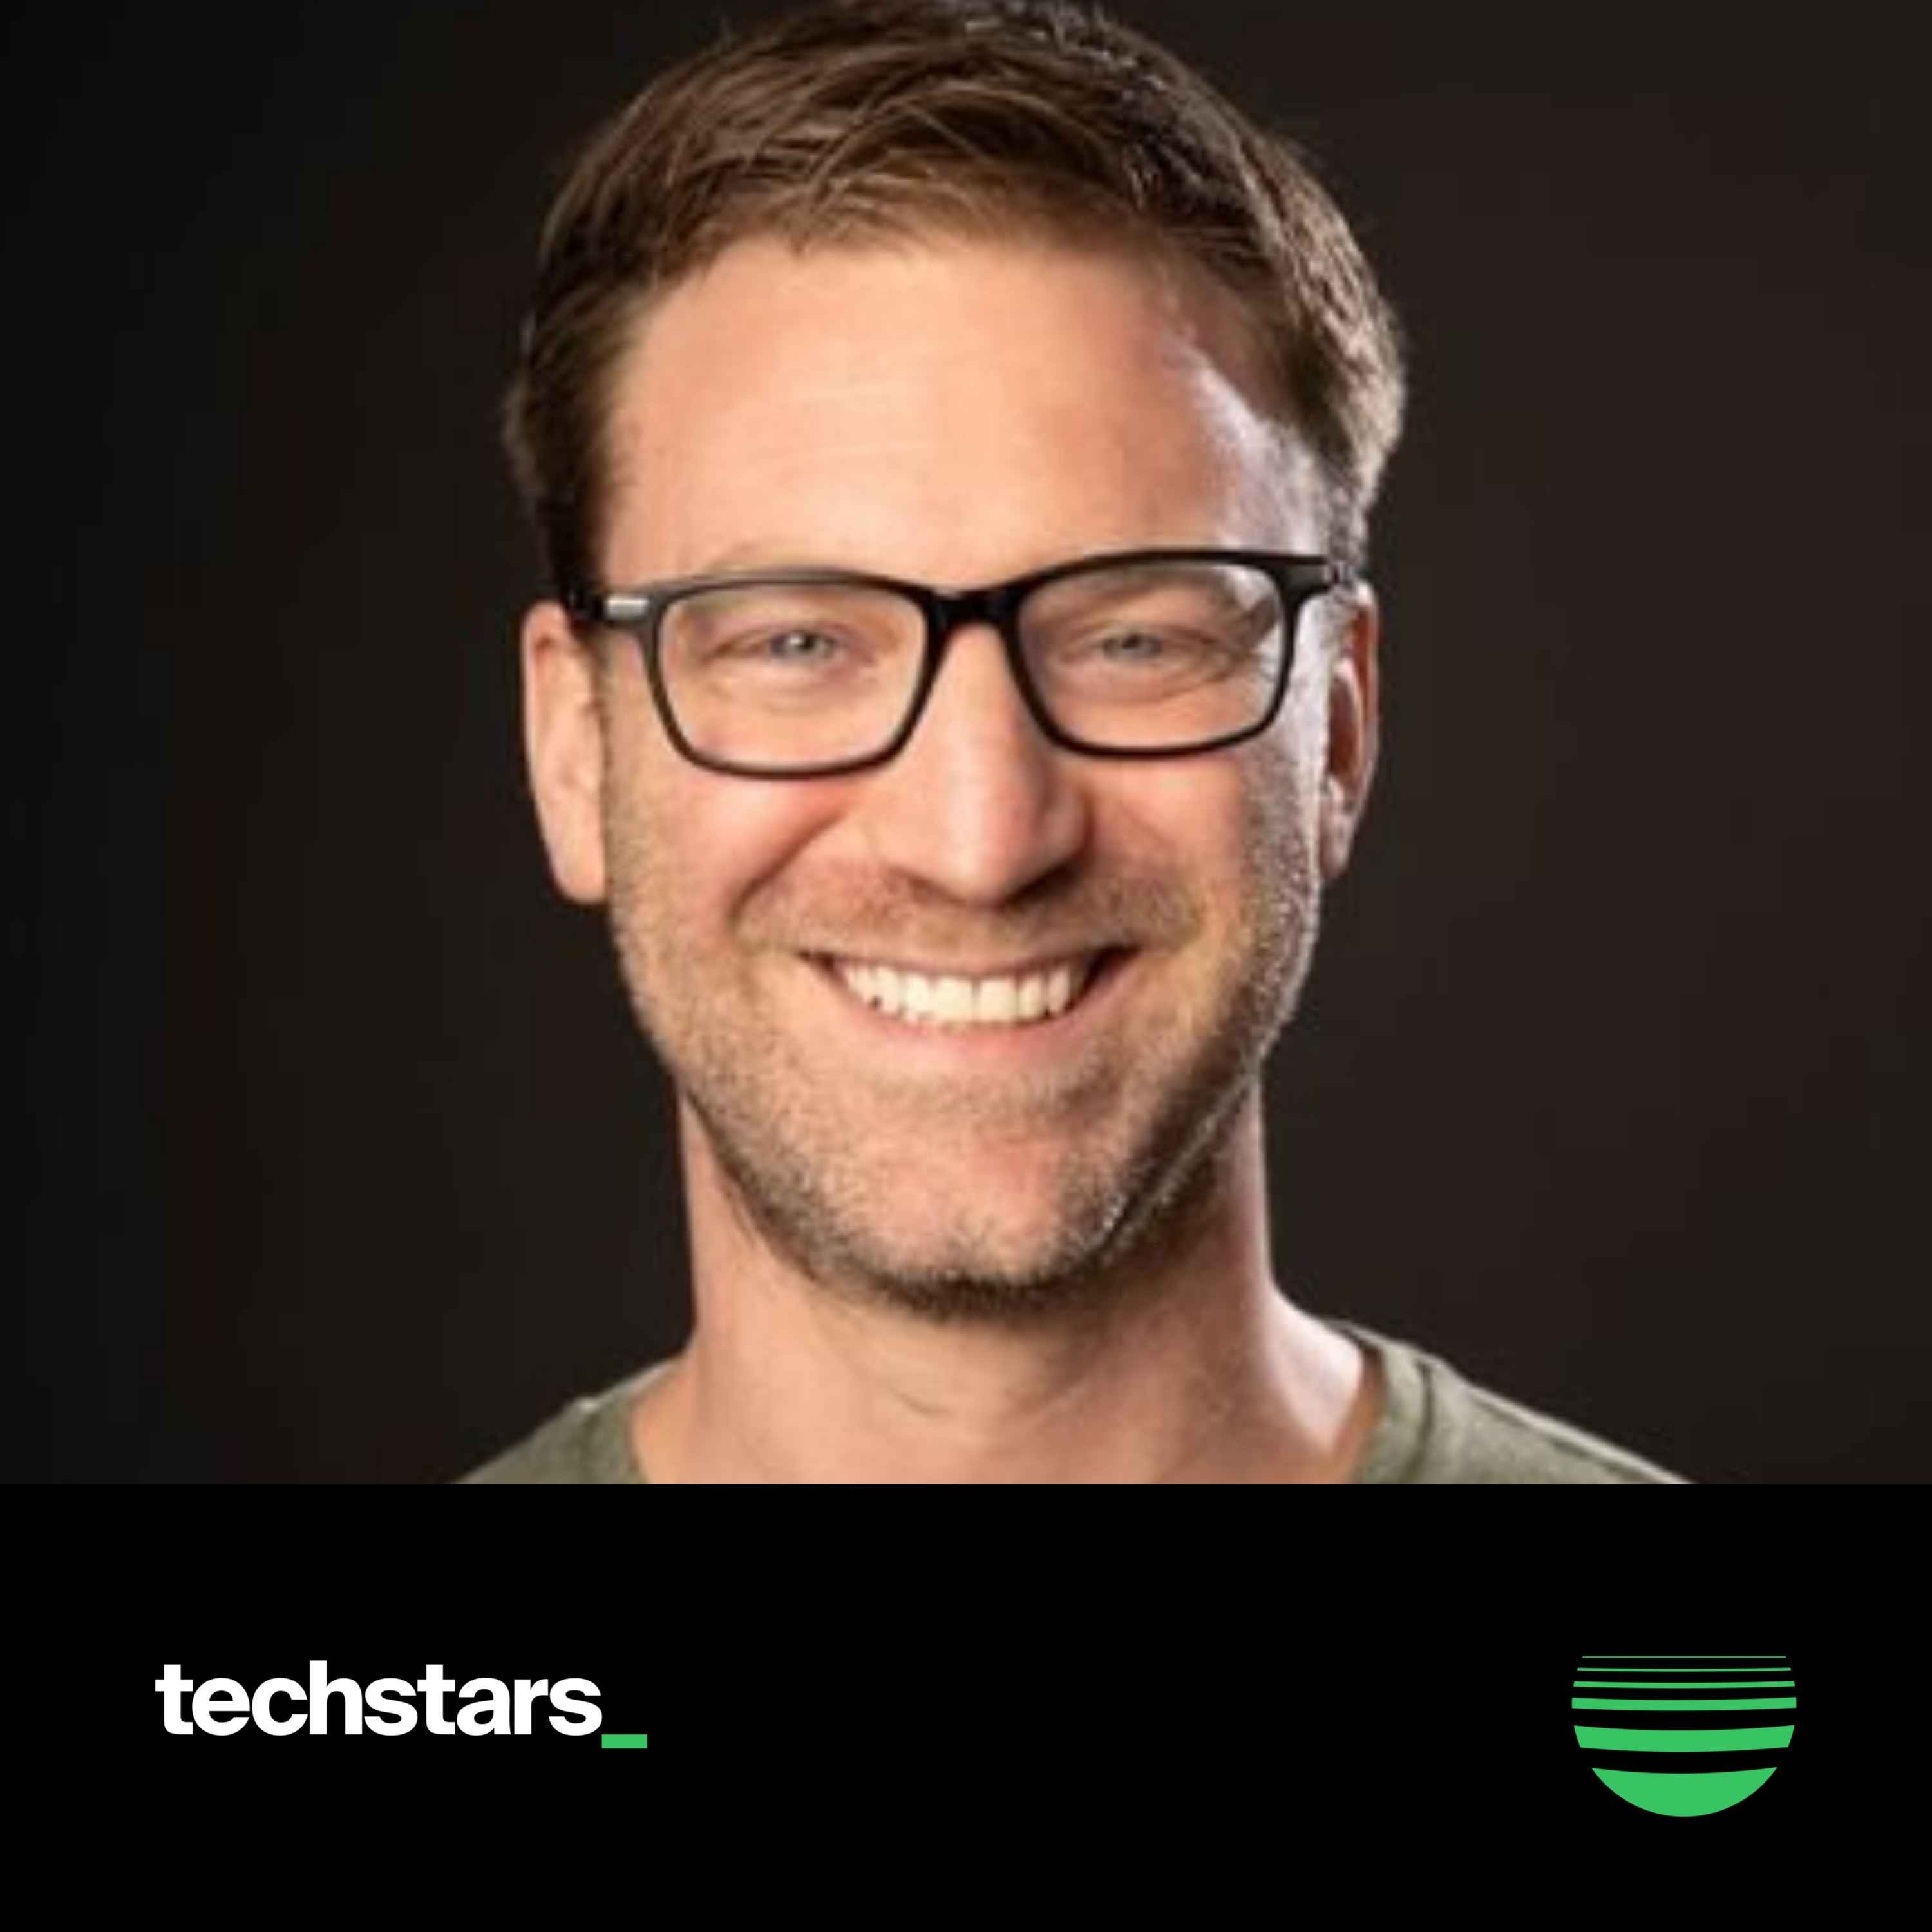 Live from CES: Event Hub CEO and Co-founder Michael Bleau on the power of live events